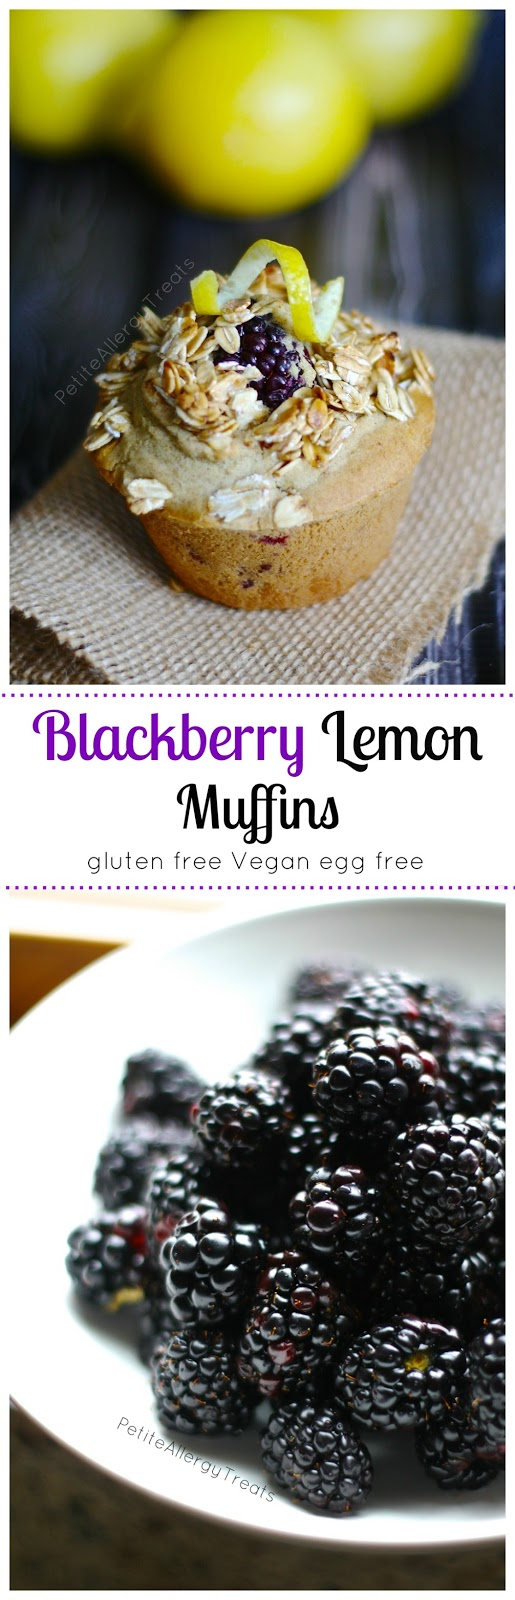 Lemon Blackberry Muffins (Gluten free Vegan) Luscious blackberries with hints of lemon, best gluten free muffin EVER!